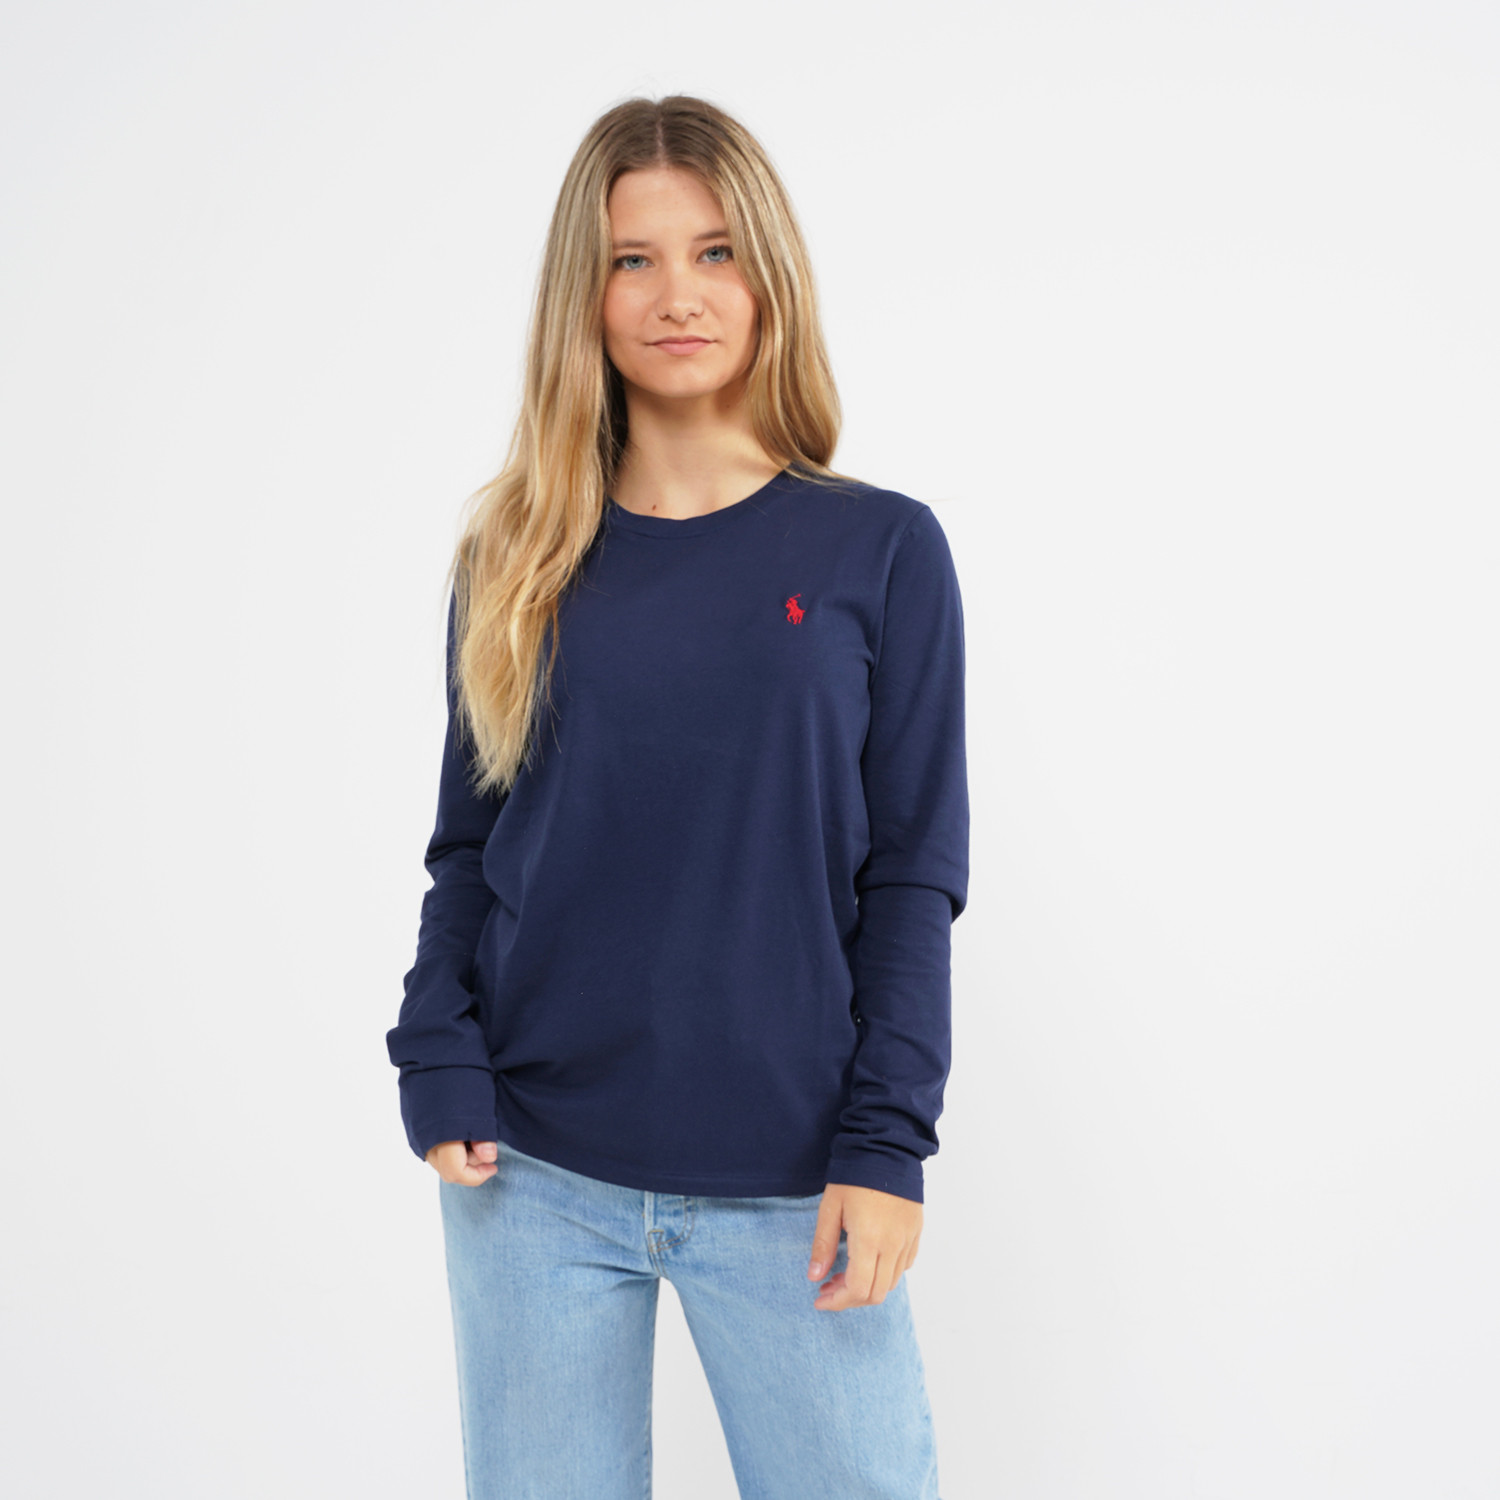 Polo Ralph Lauren Lng Slv Tee-Long Sleeve-Knit (9000064592_42083)